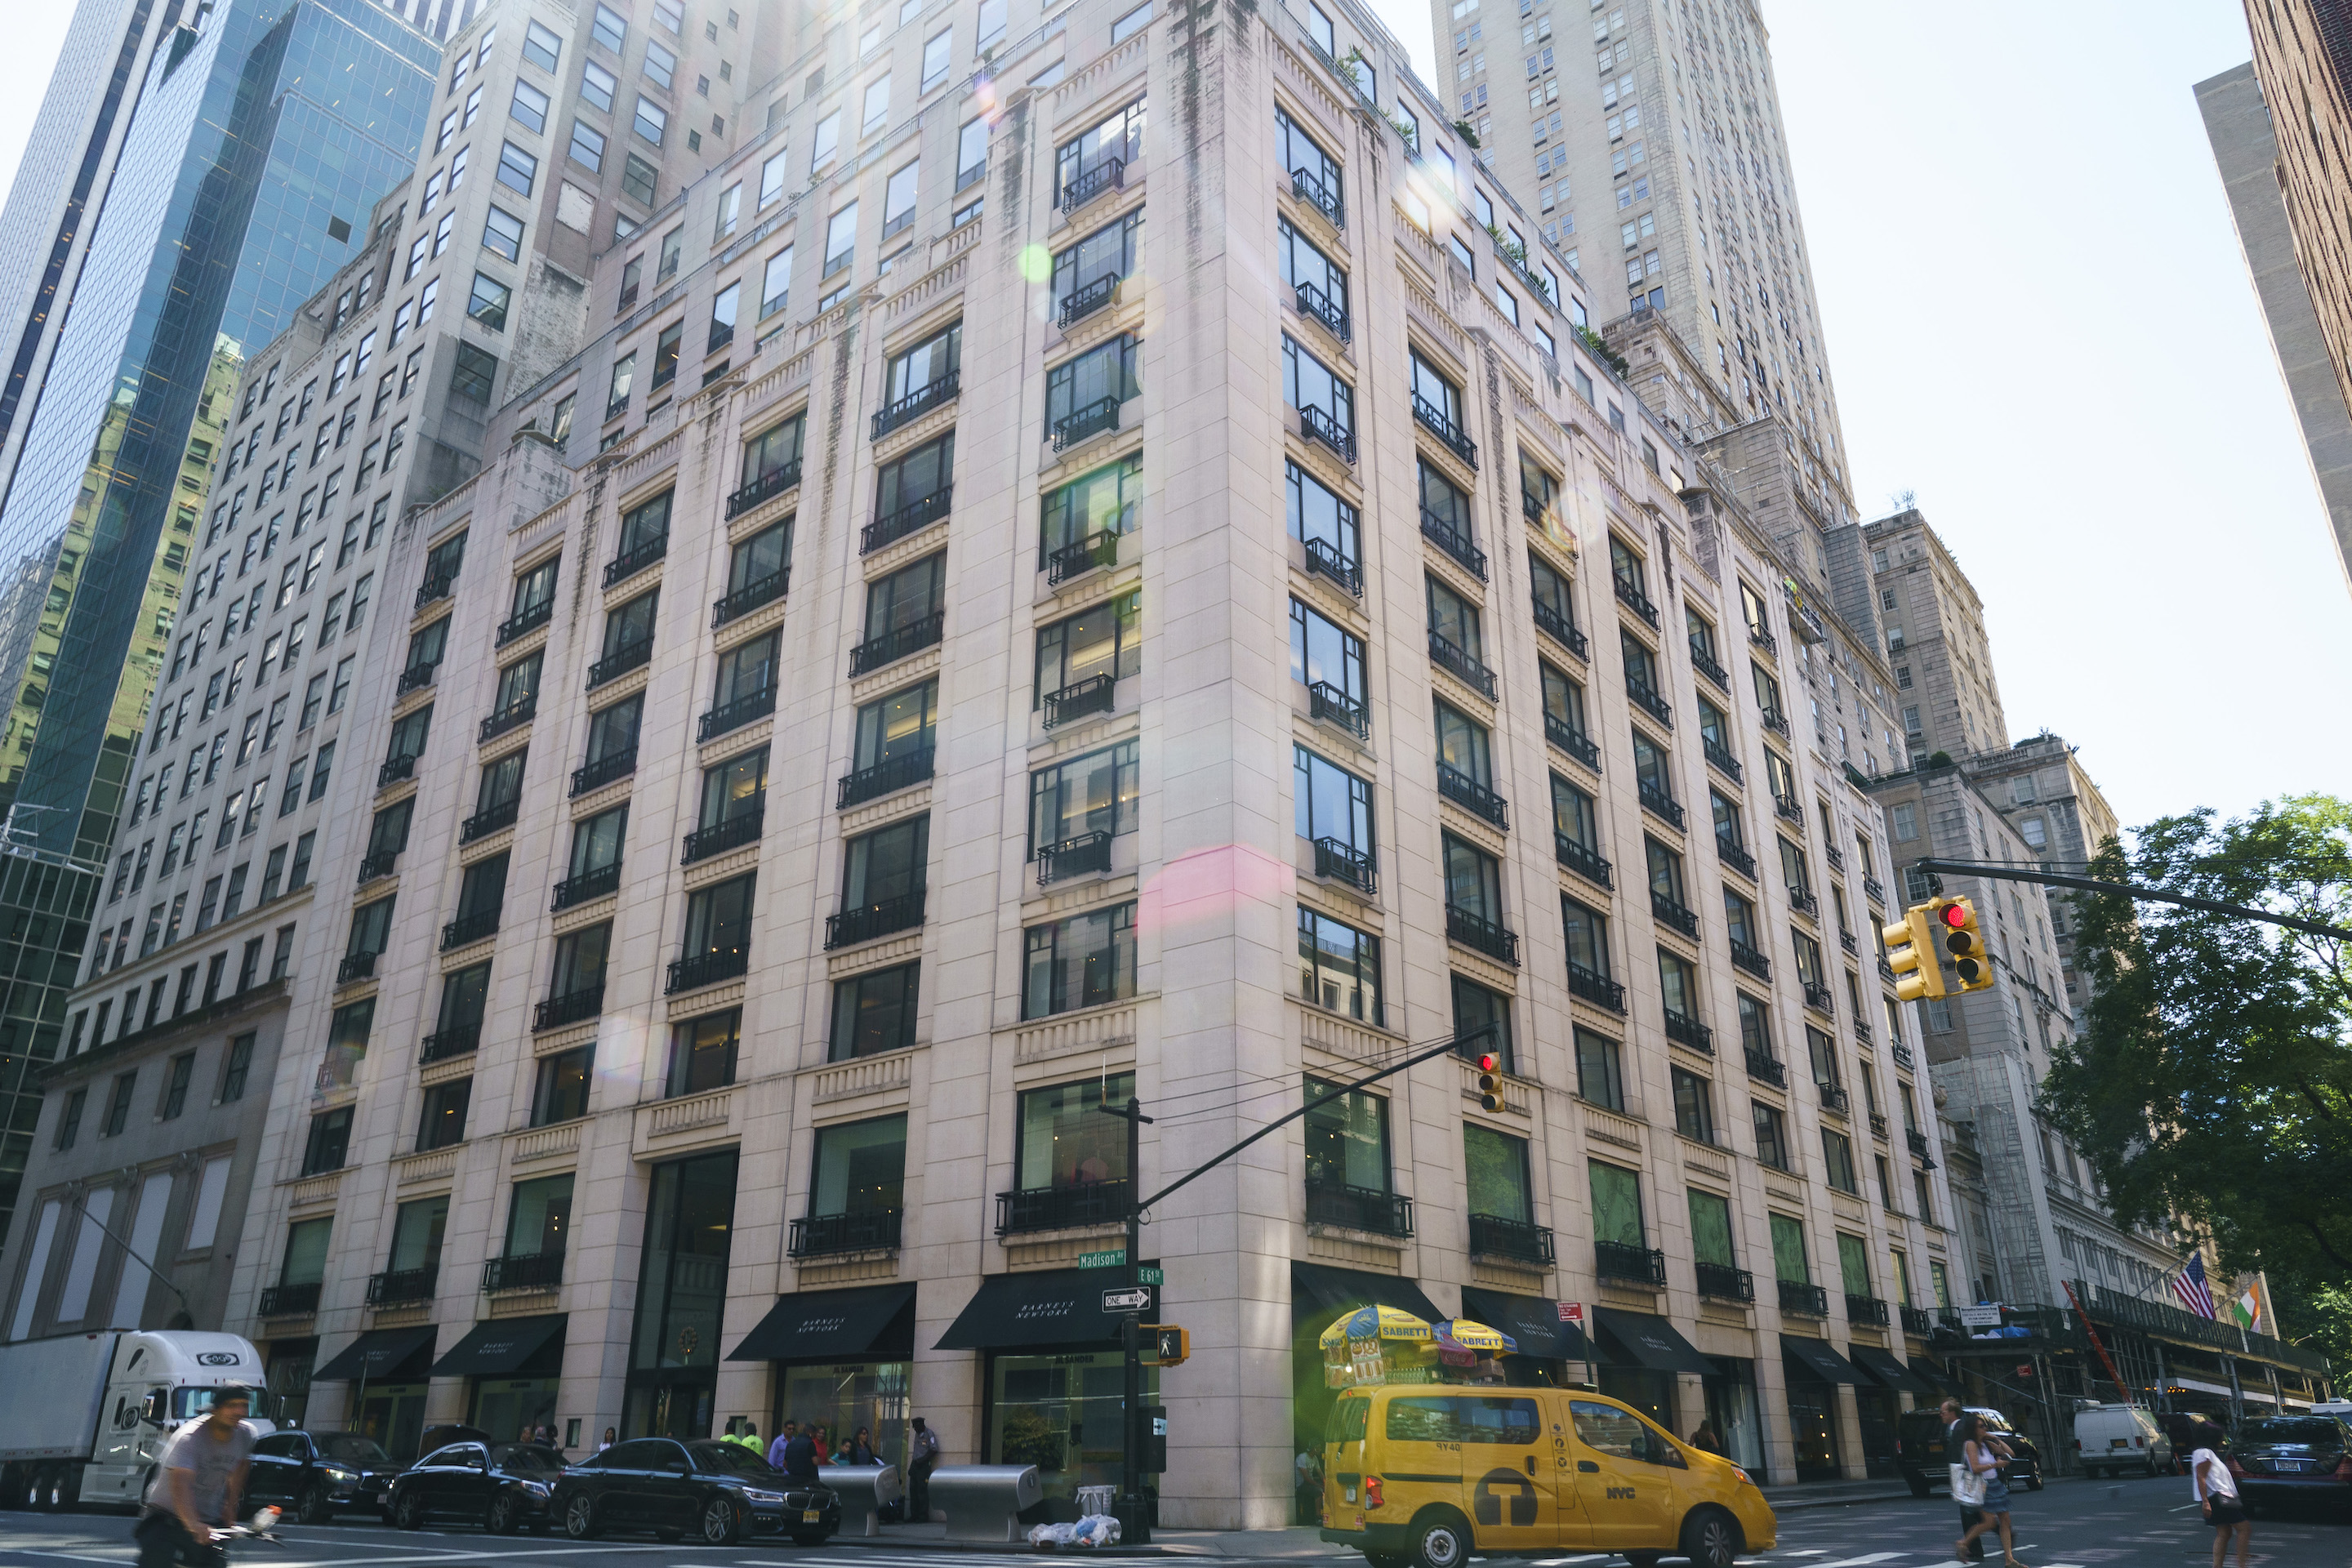 Barneys New York stands at 63rd Street and Madison Avenue in Midtown Manhattan, is slated to stay open as part of the retailer's reorganization.